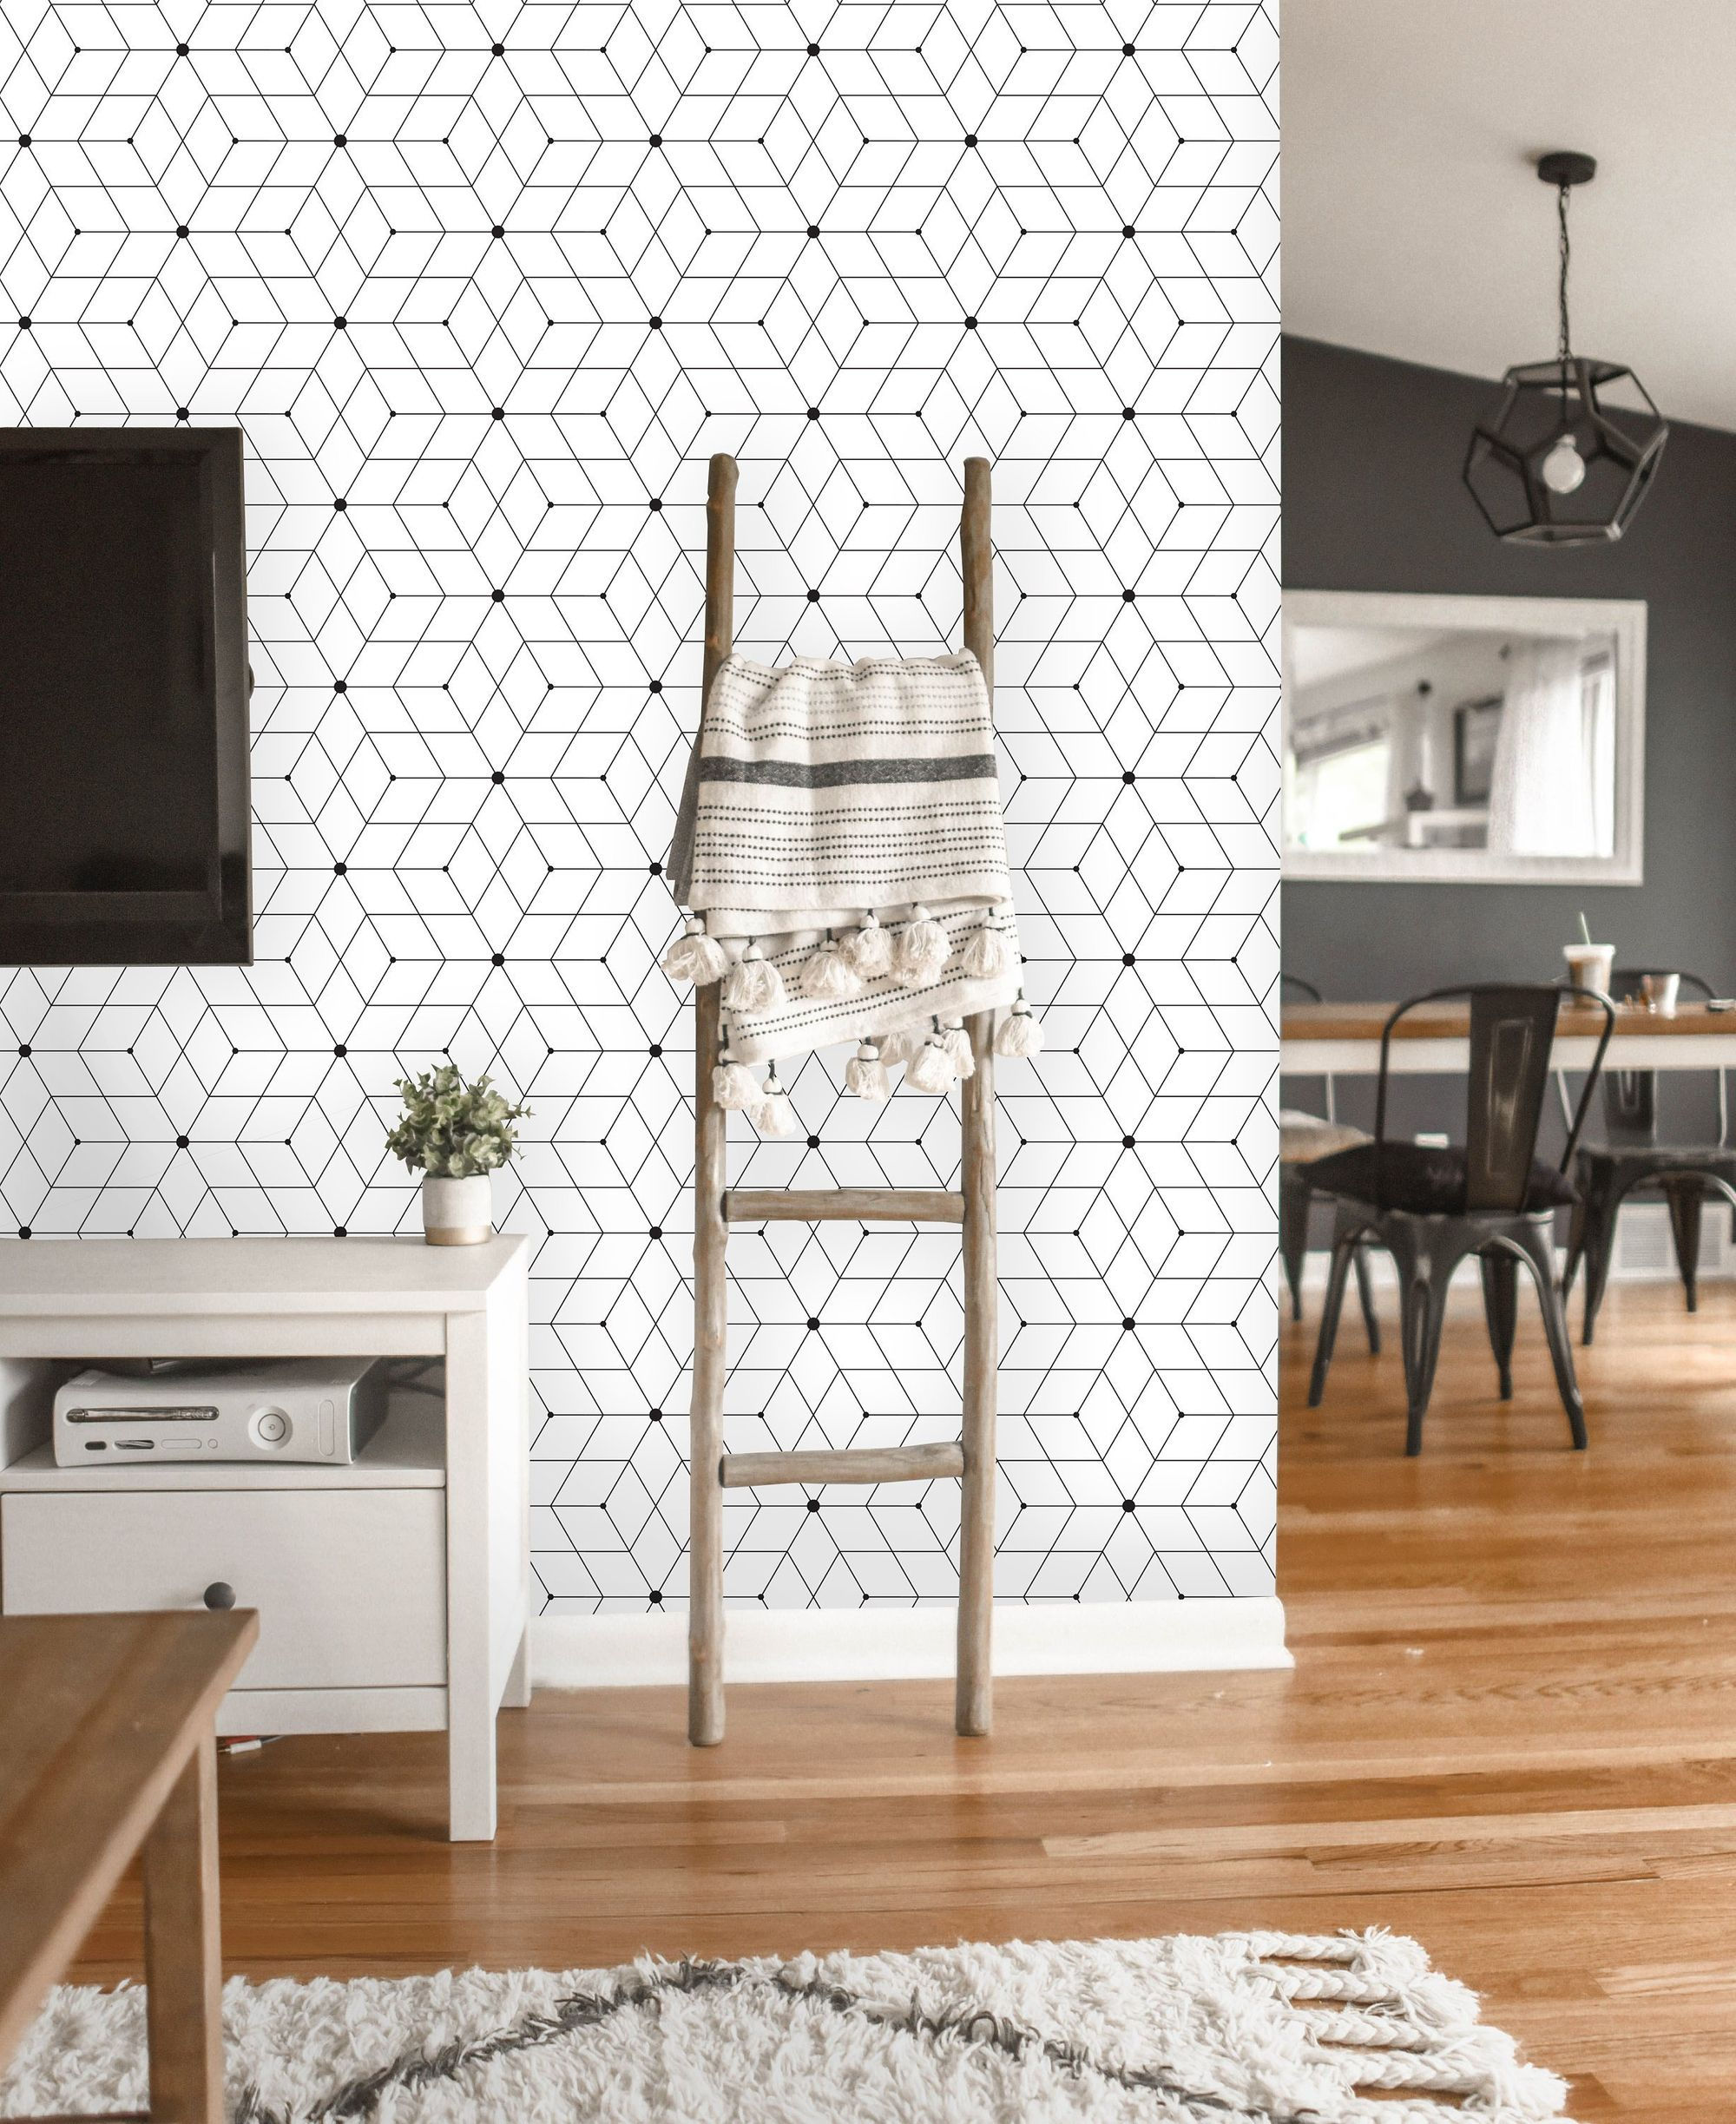 Removable Wallpaper Peel And Stick Geometric Wallpaper Etsy Geometric Removable Wallpaper Geometric Wallpaper Removable Wallpaper